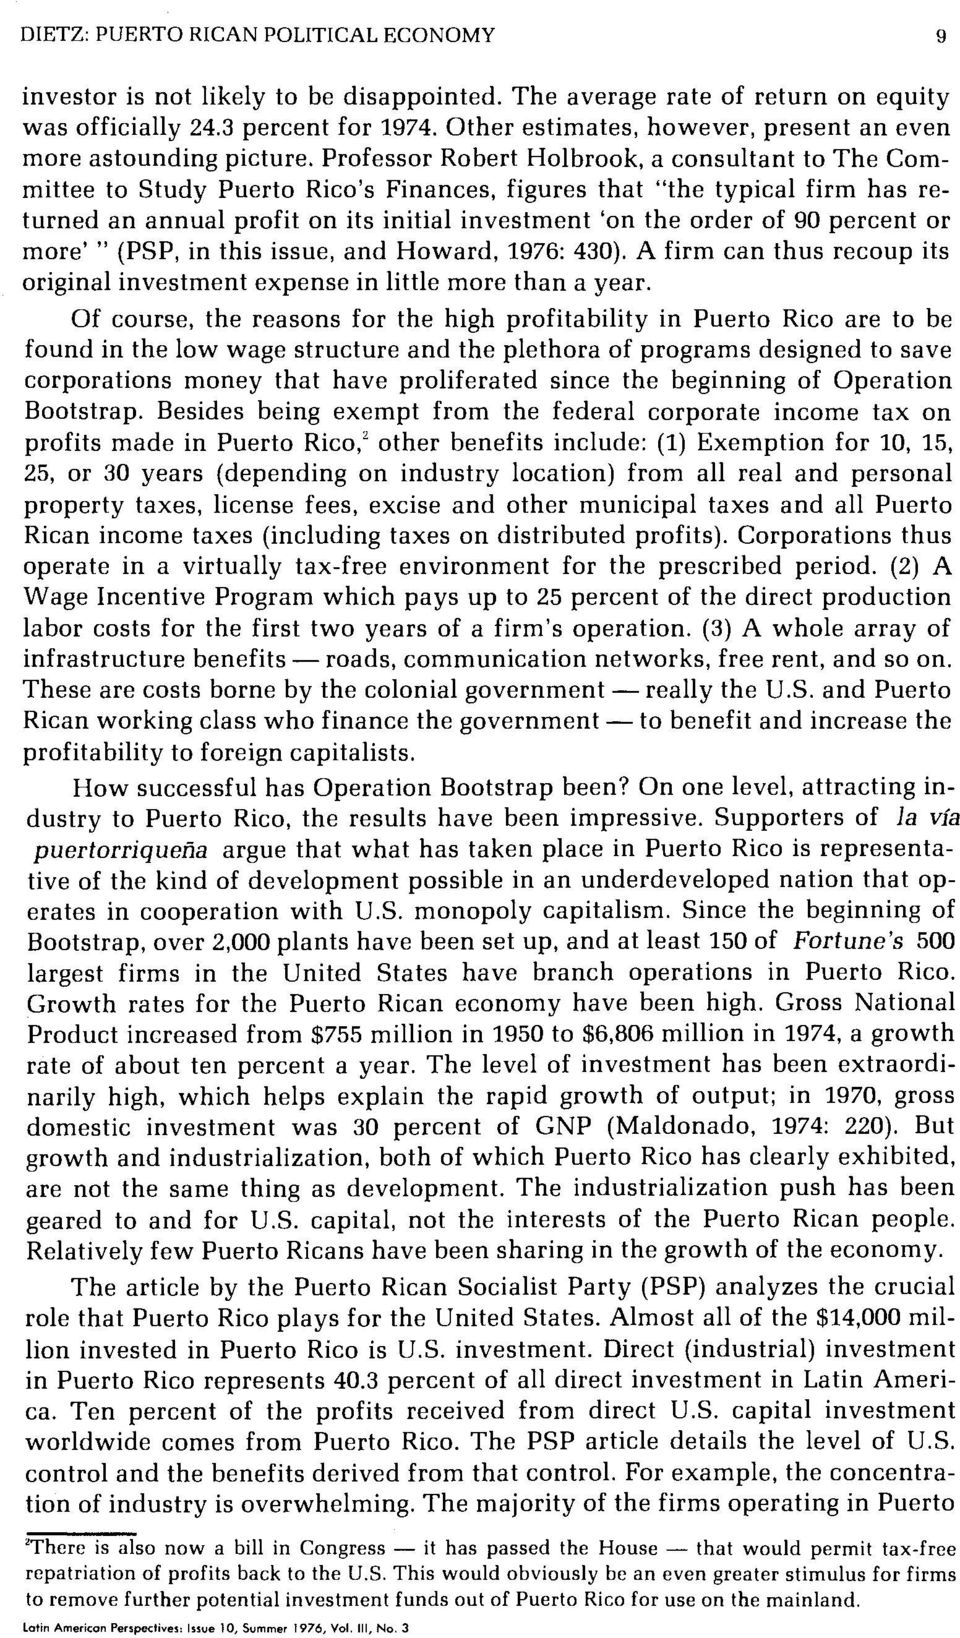 "returned an annual profit on its initial investment 'on the order of 90 percent or more' "" (PSP, in this issue, and Howard, 1976: 430)."